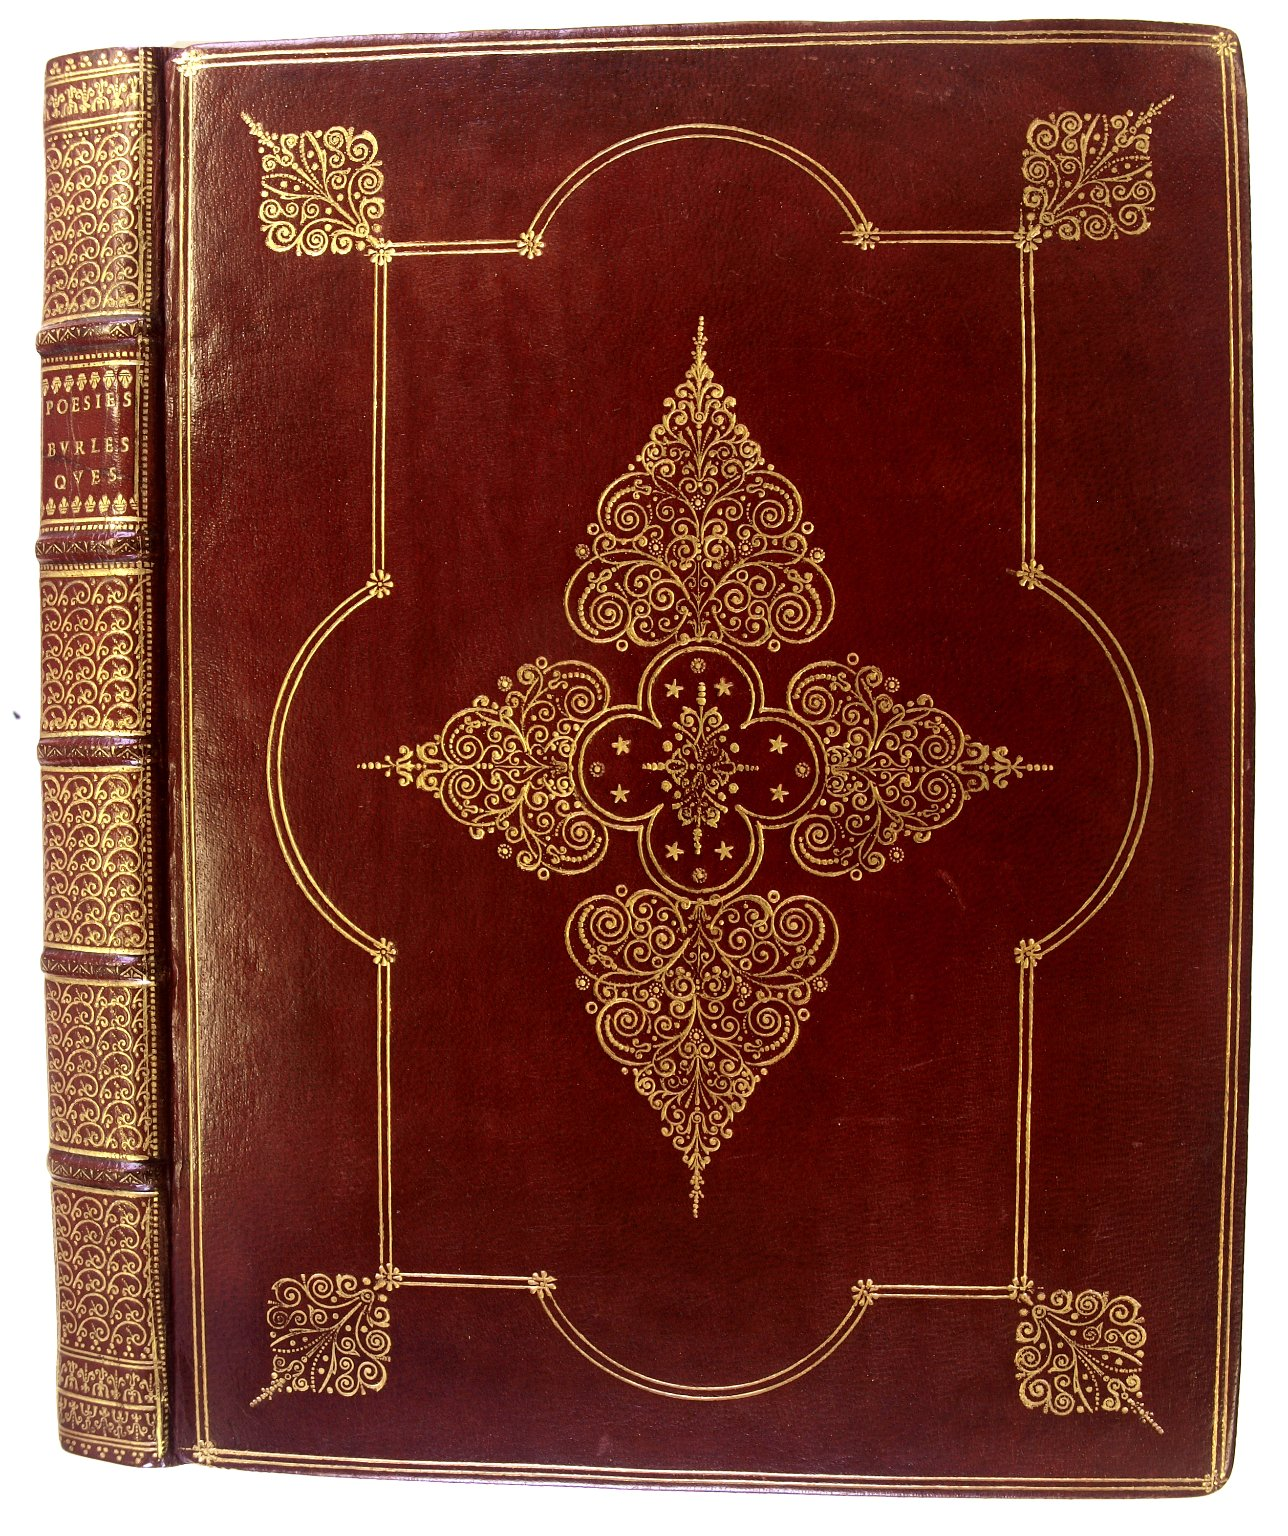 Front cover and spine, 221522.